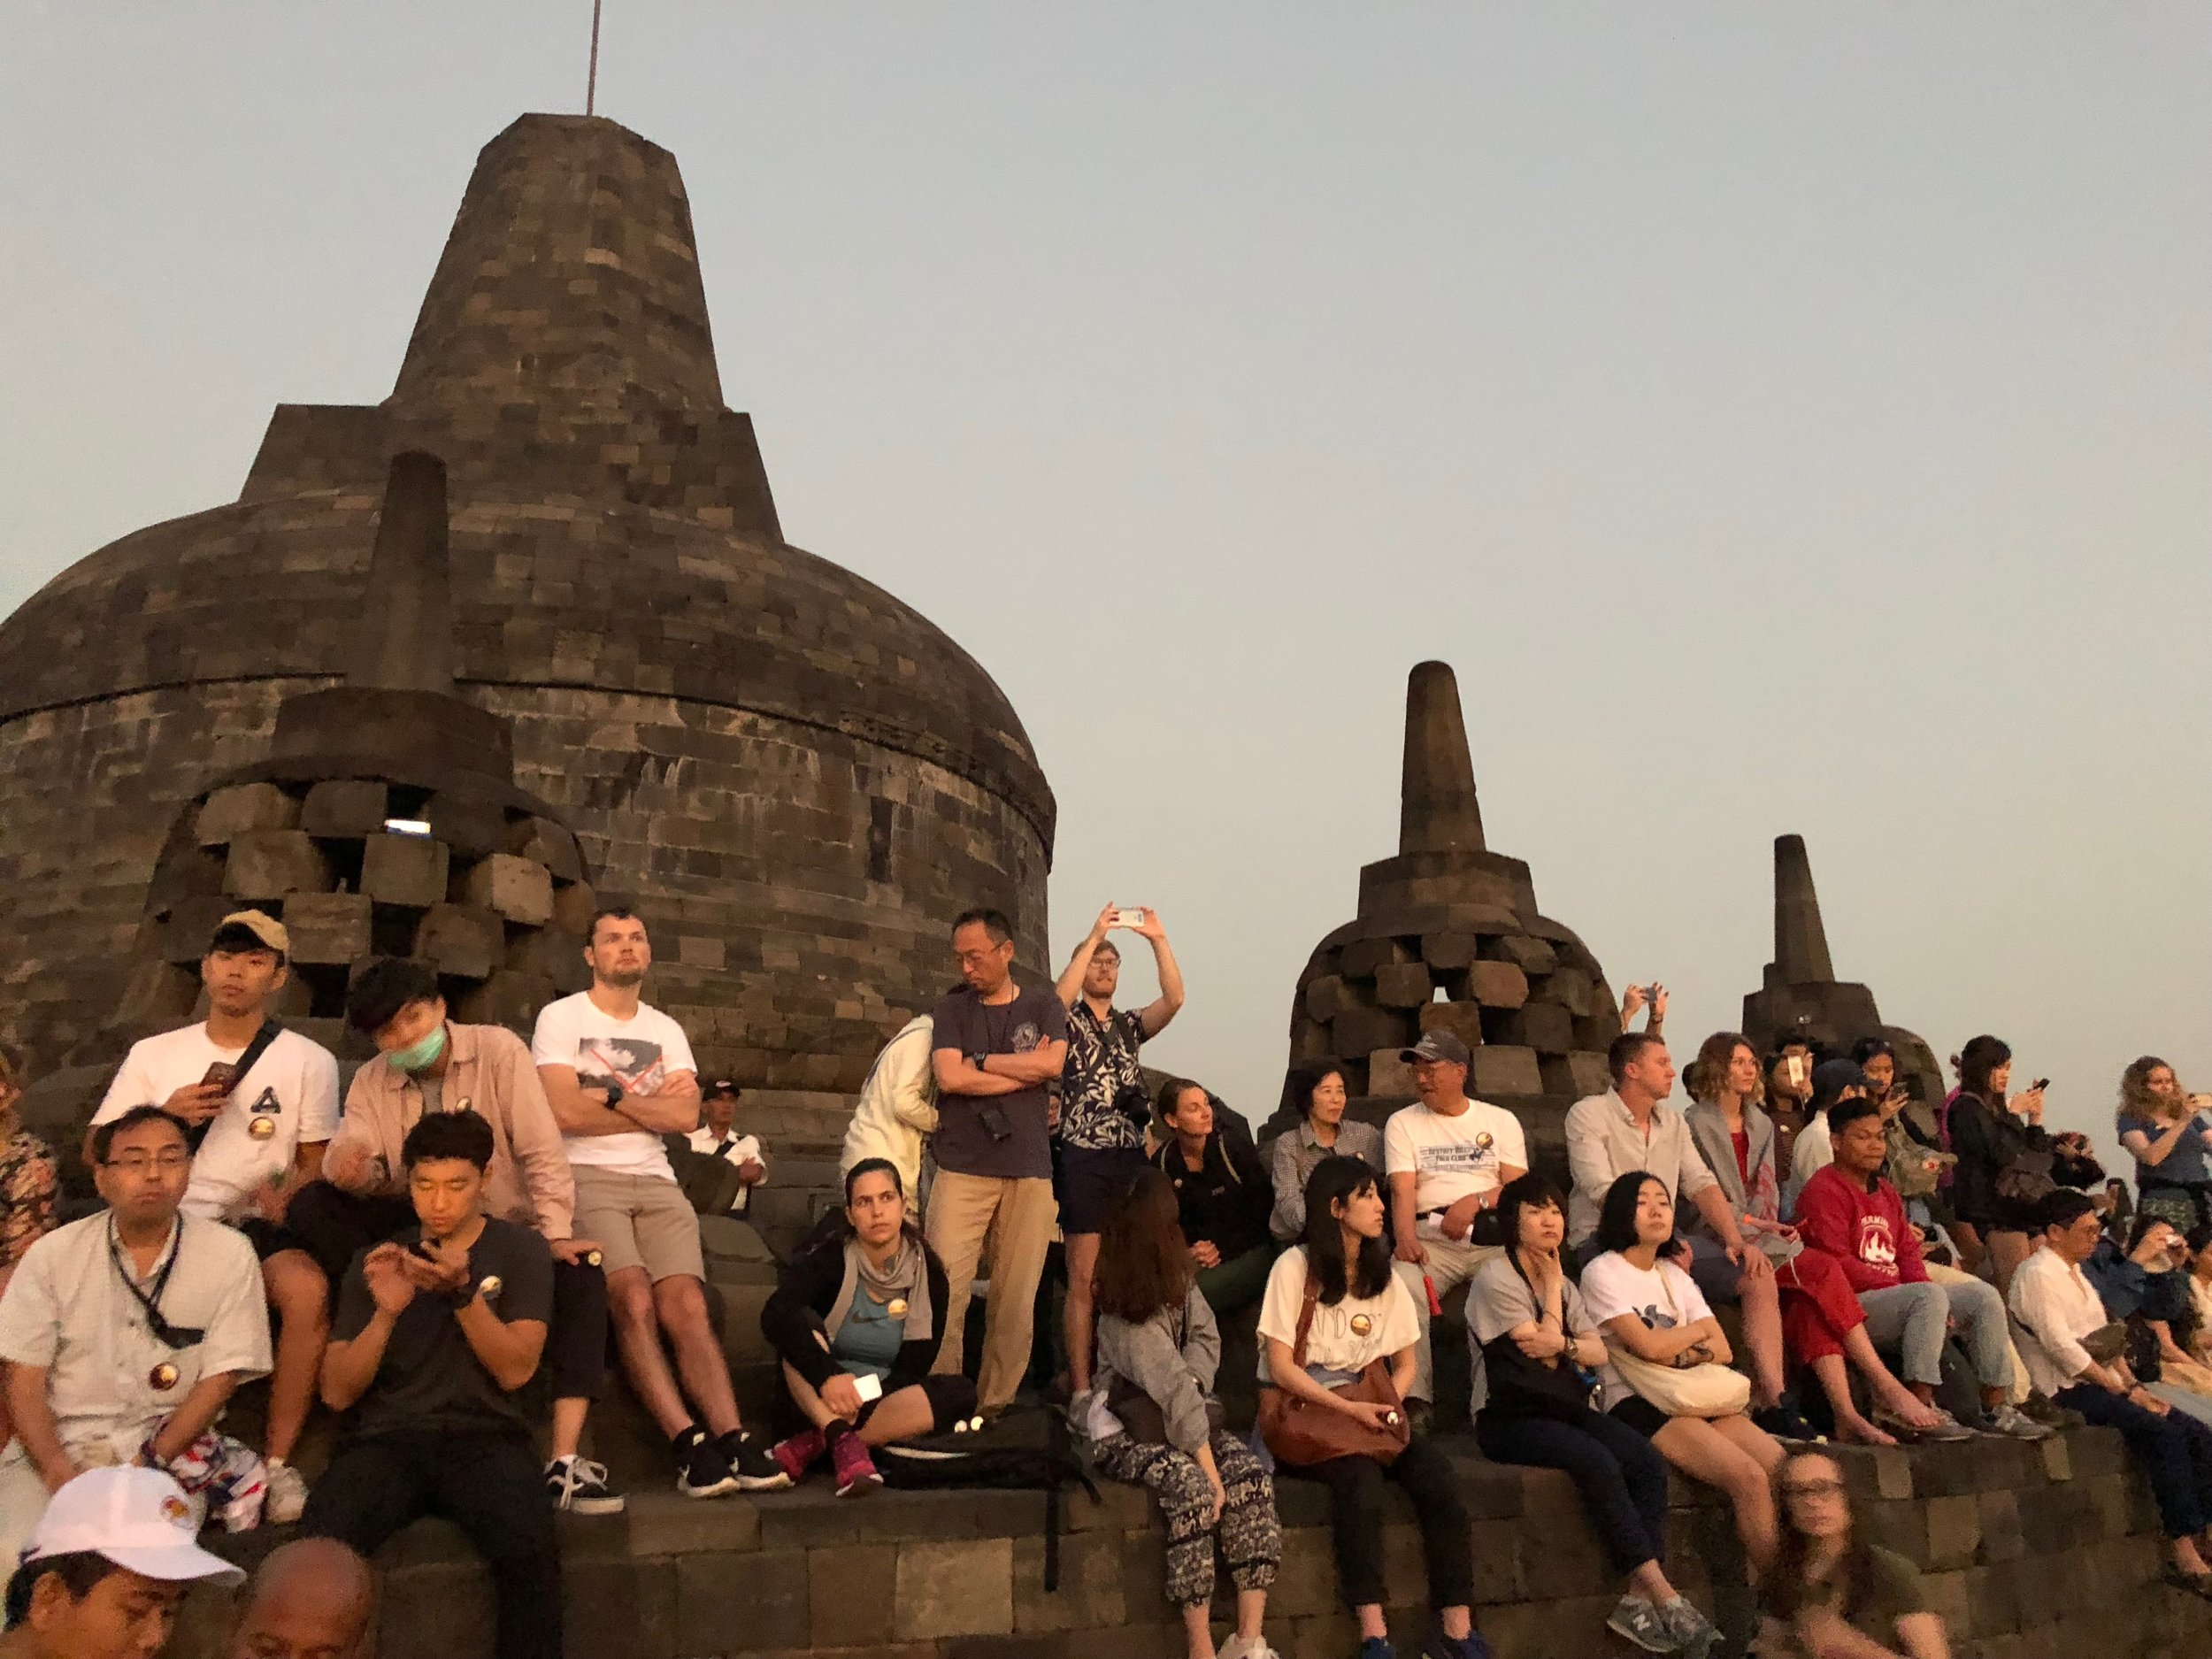 This is the real Borobudur you don't ever see in pictures — the hundreds of tourists all vying for a prime spot to photograph sunrise